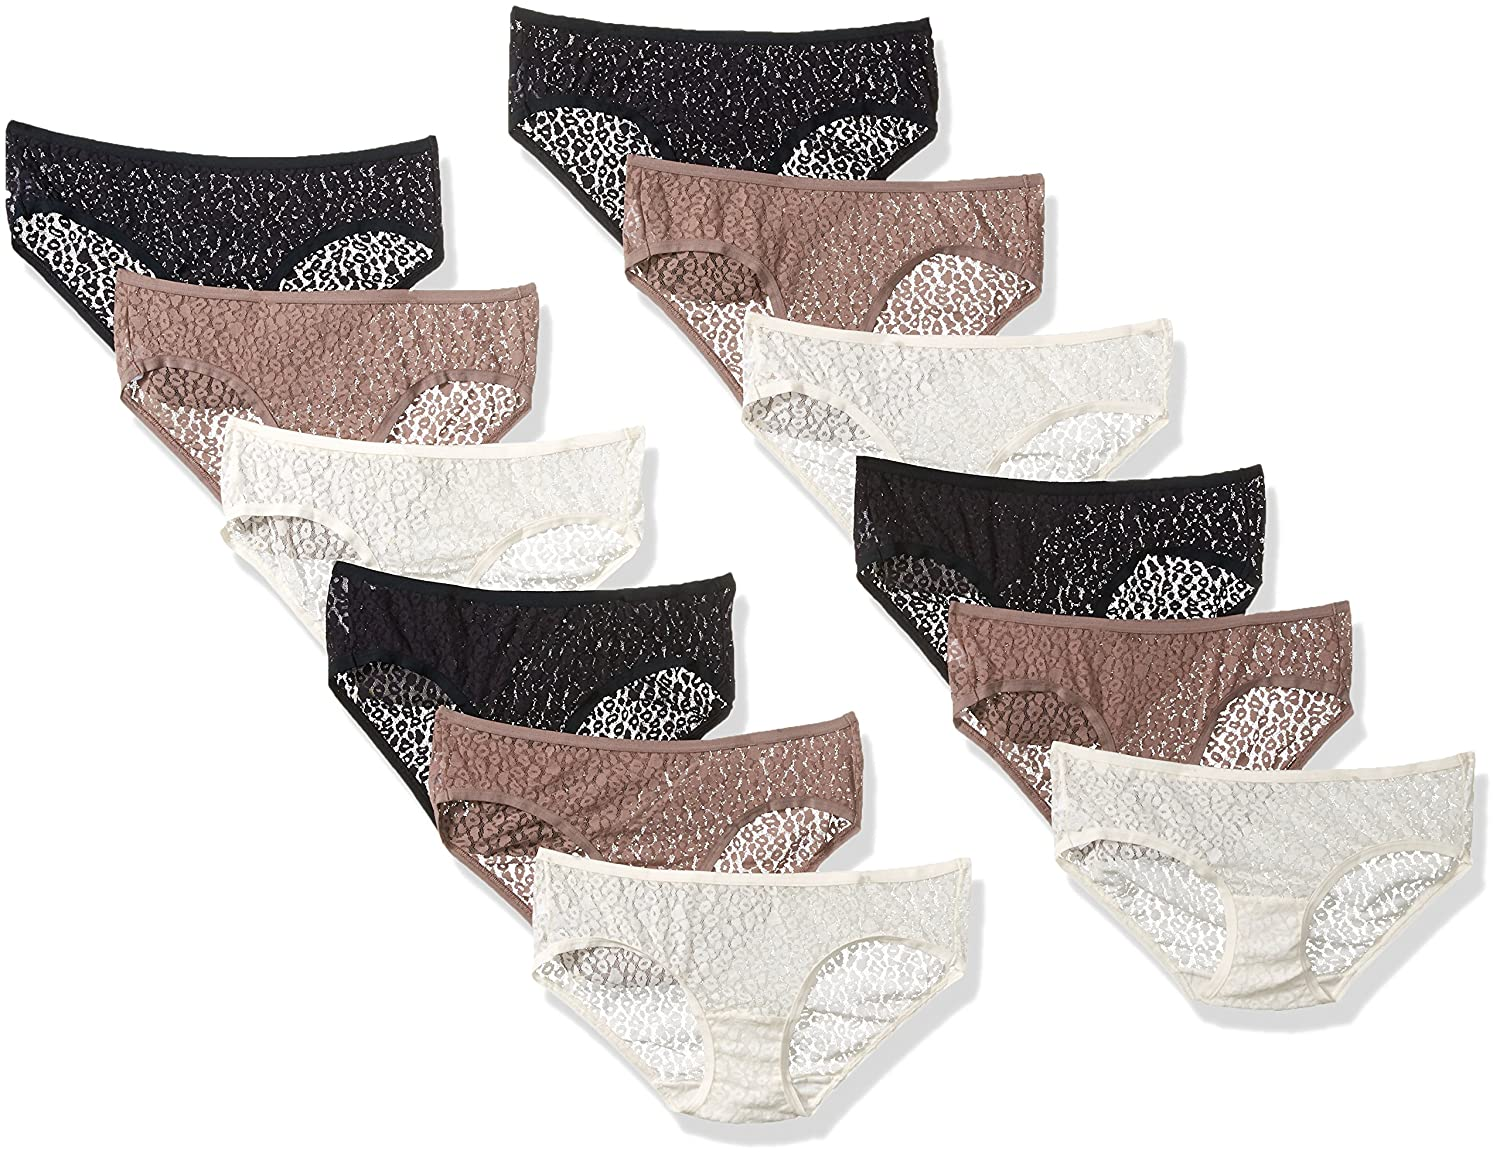 c057e72df2852 Fruit of the Loom Women s 12 Pack All Over Lace Hipster Panties at Amazon  Women s Clothing store